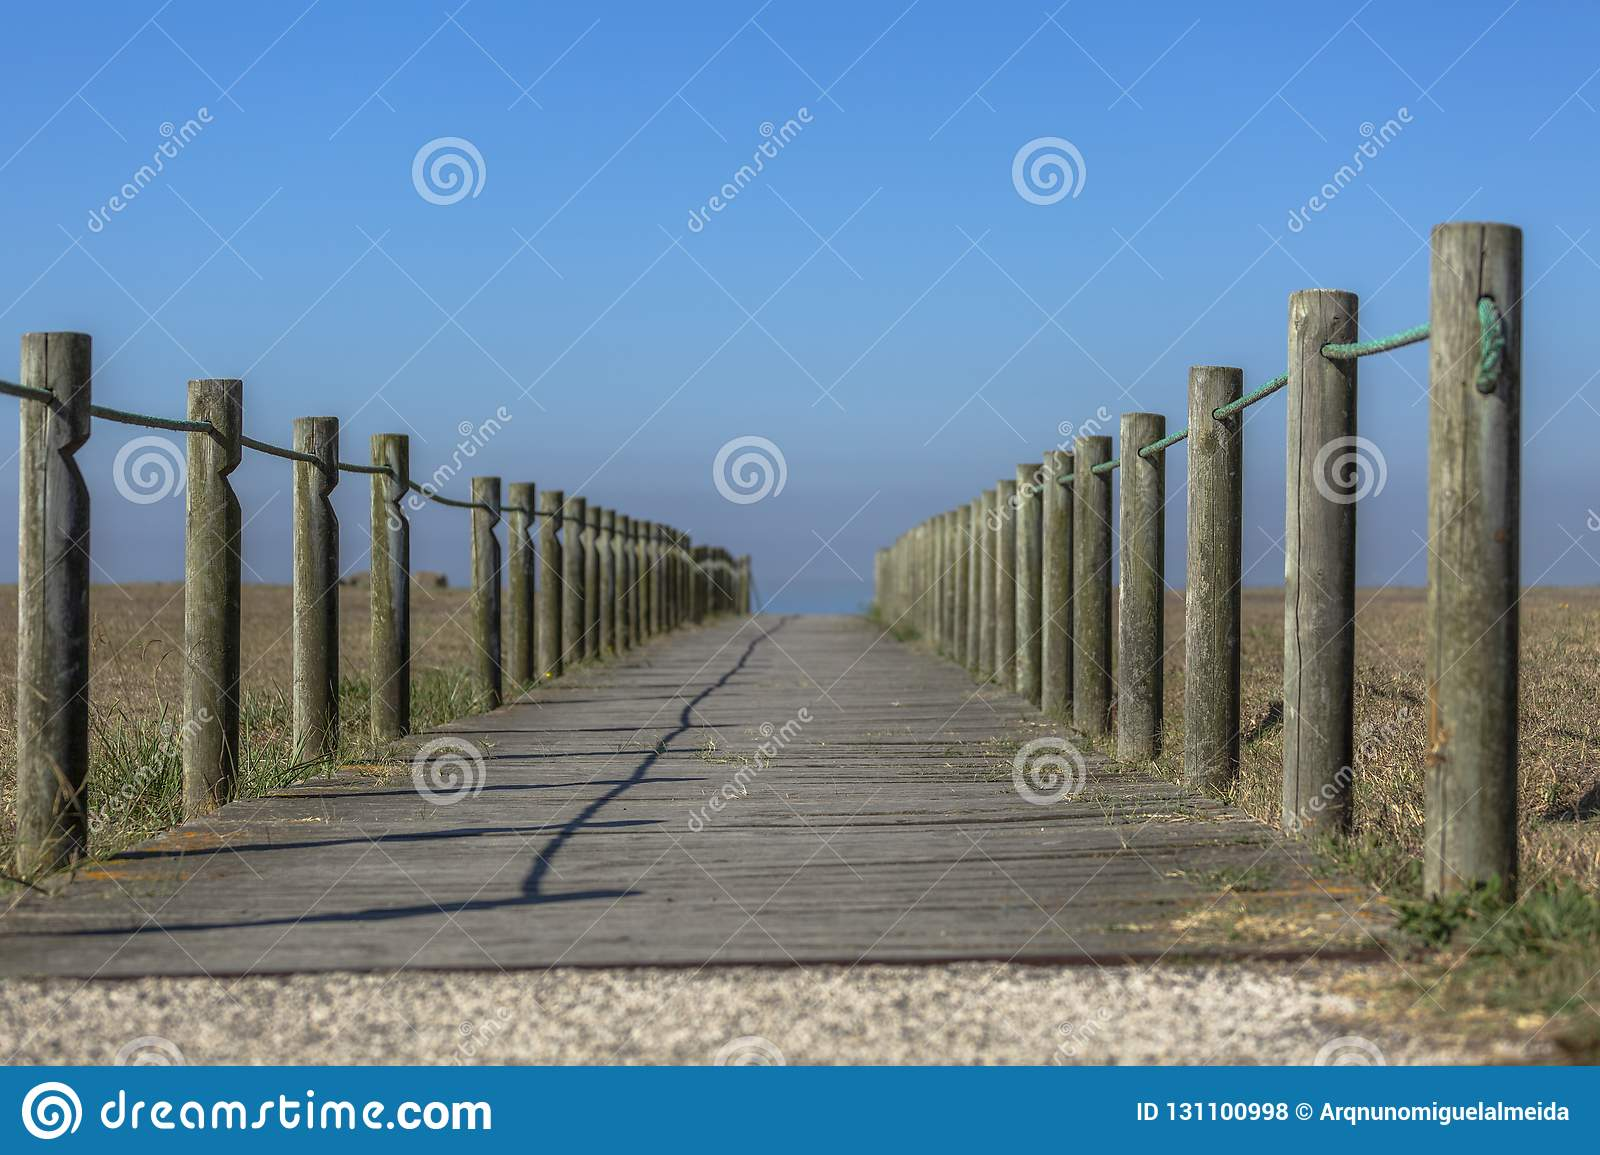 Perspective view of wooden pedestrian walkway, towards the ocean, next to the beach